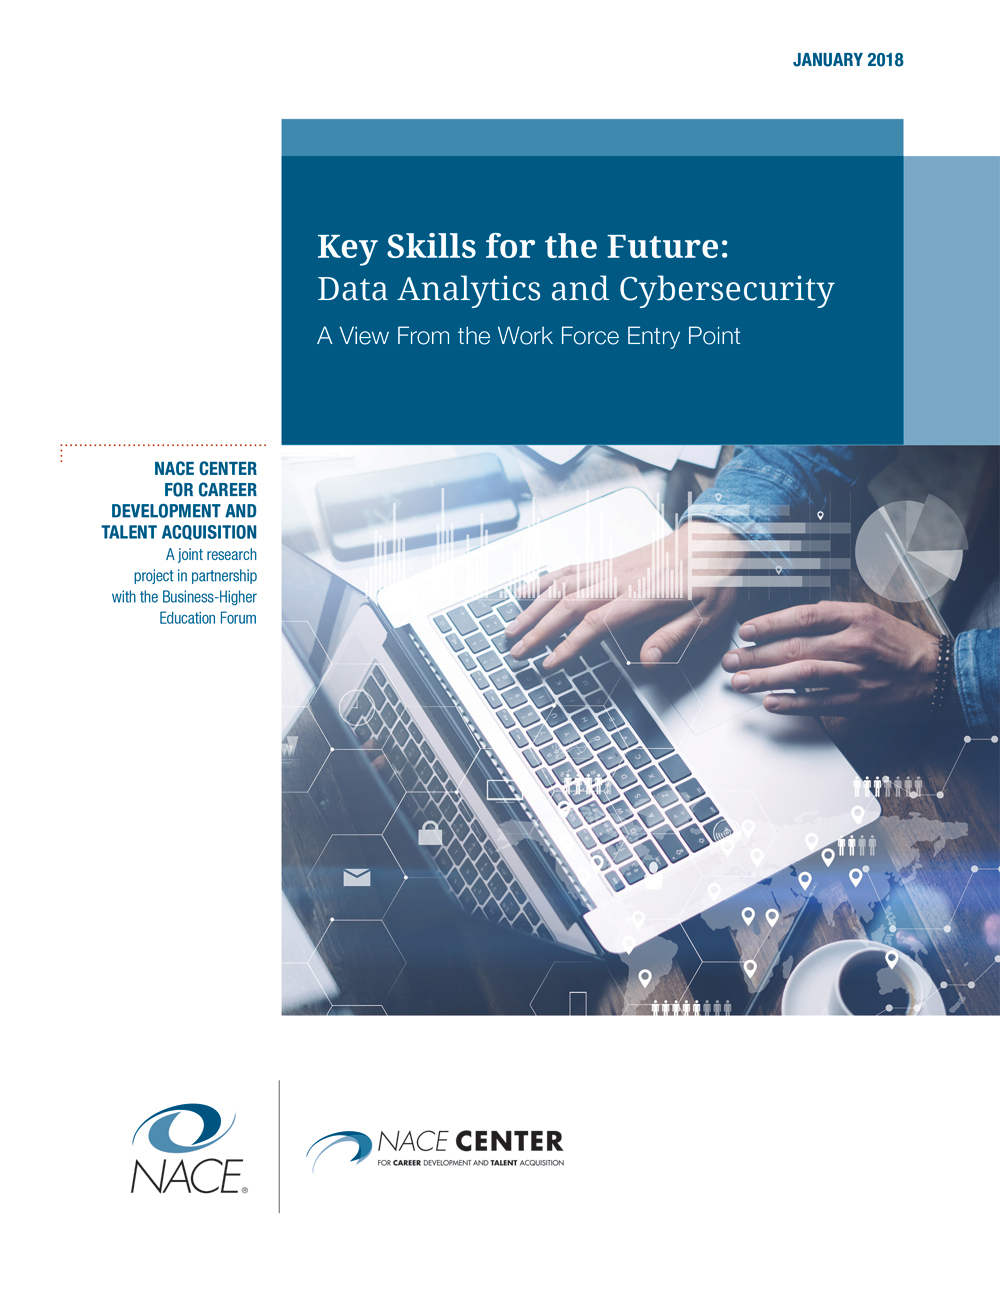 Key Skills for the Future